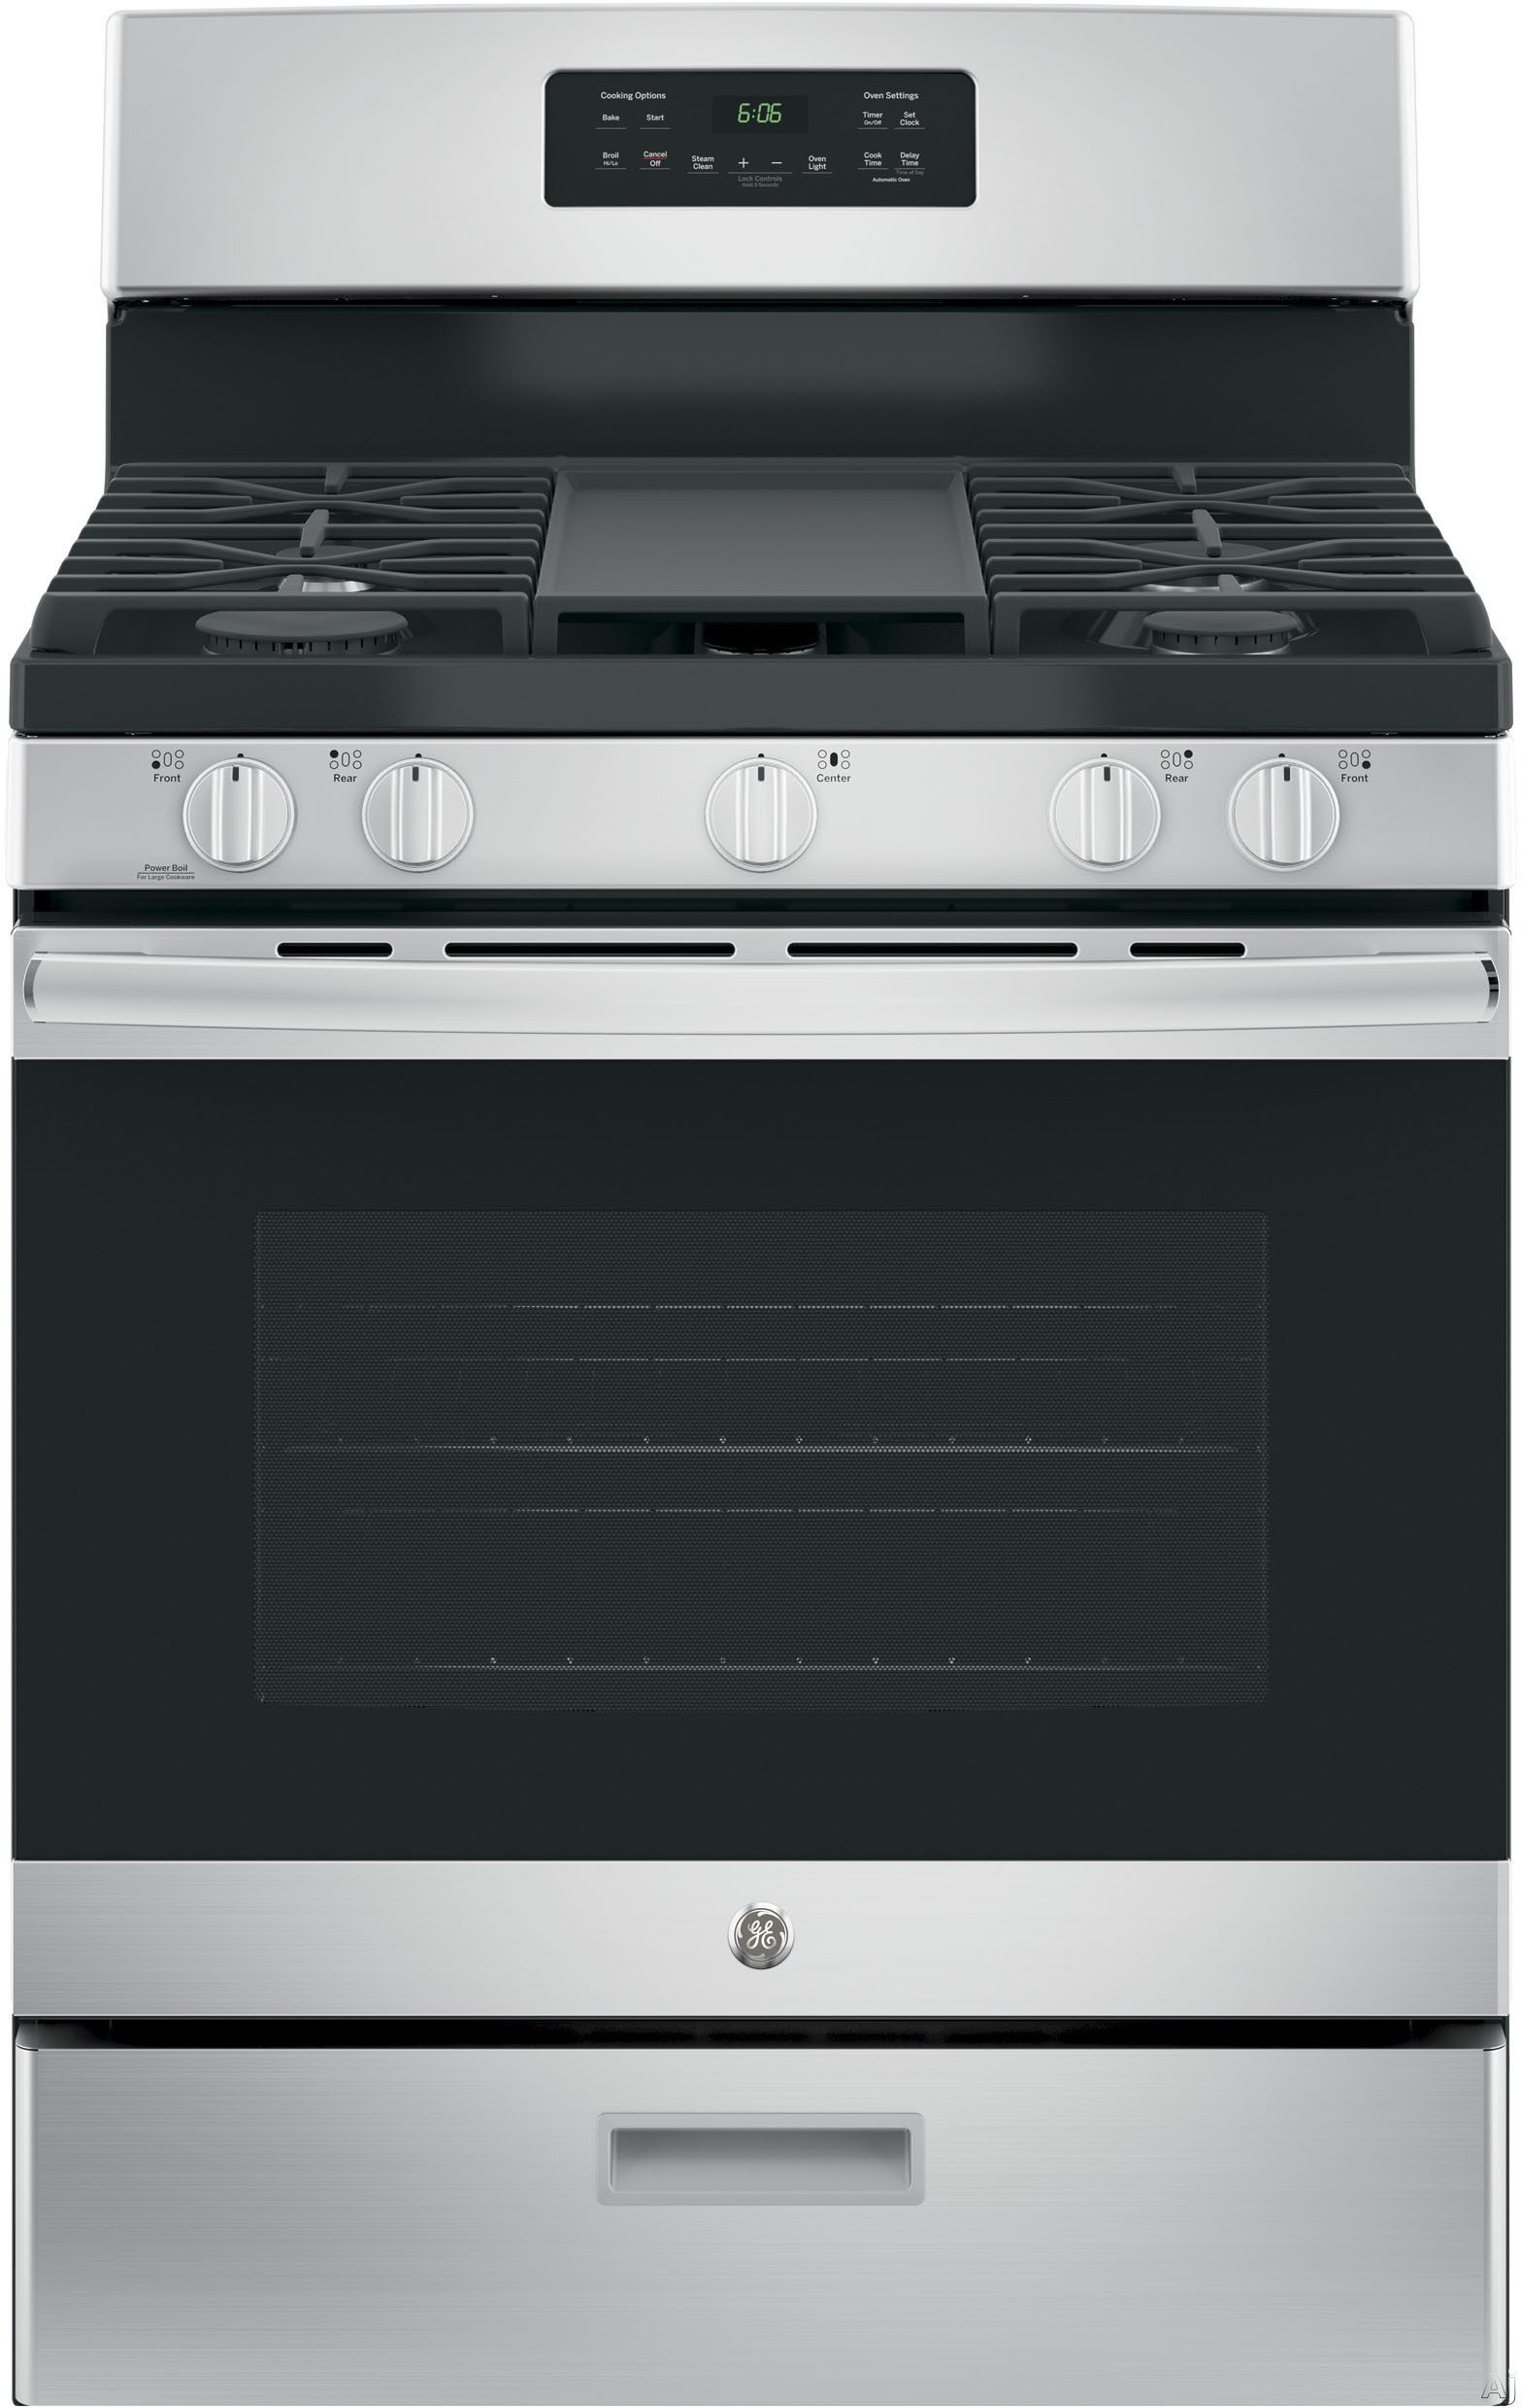 "30"" Free-Standing Gas Range with Griddle Finish: Stainless Steel -  JGBS66REKSS"